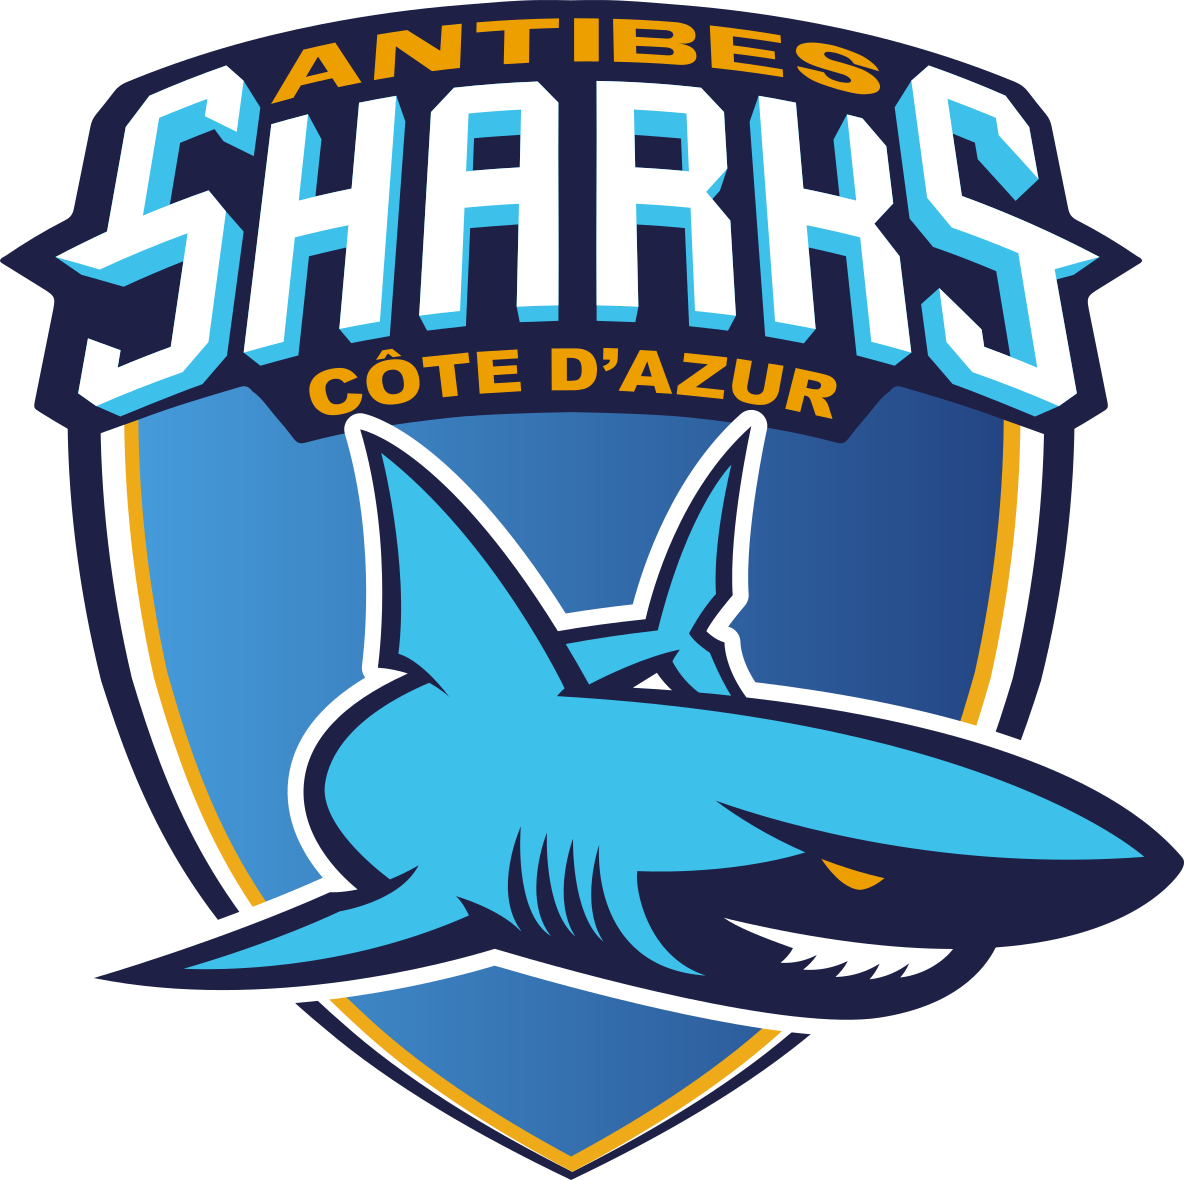 Boutique Antibes Sharks